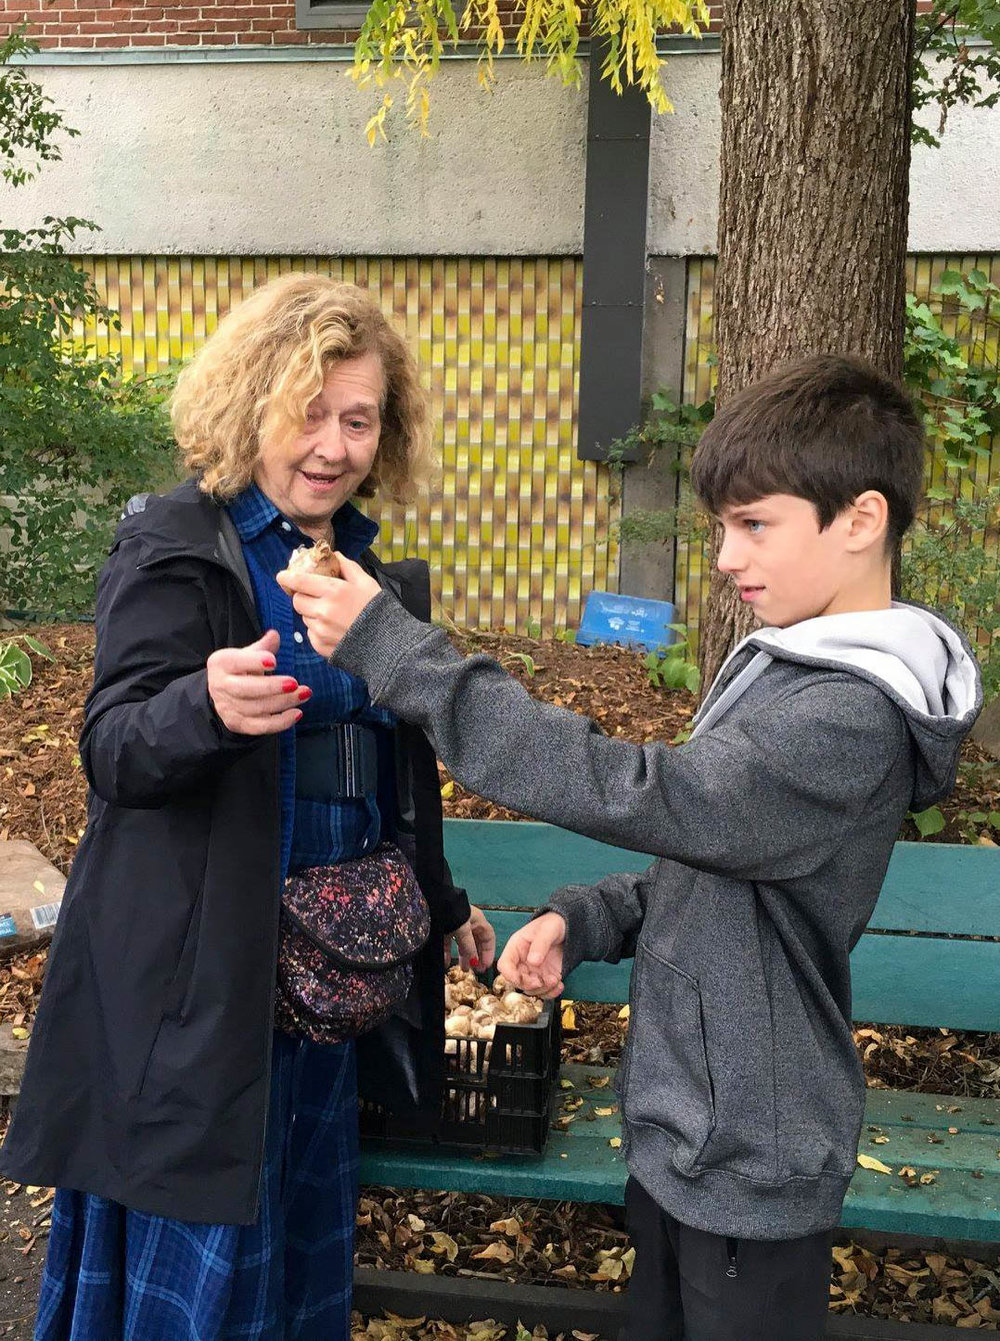 Gannaiden Goes to School - On October 15, 2018, Gannaiden: Garden of Possibilities launched 'le jardin pour tous' - a sculpture-related garden initiative in collaboration with l'école secondaire de la Cite-des-Jeunes in Vaudreuil-Dorion. Through student participation, the project aspires to revitalize and socialize a highly visible garden space that has been abandoned to neglect.